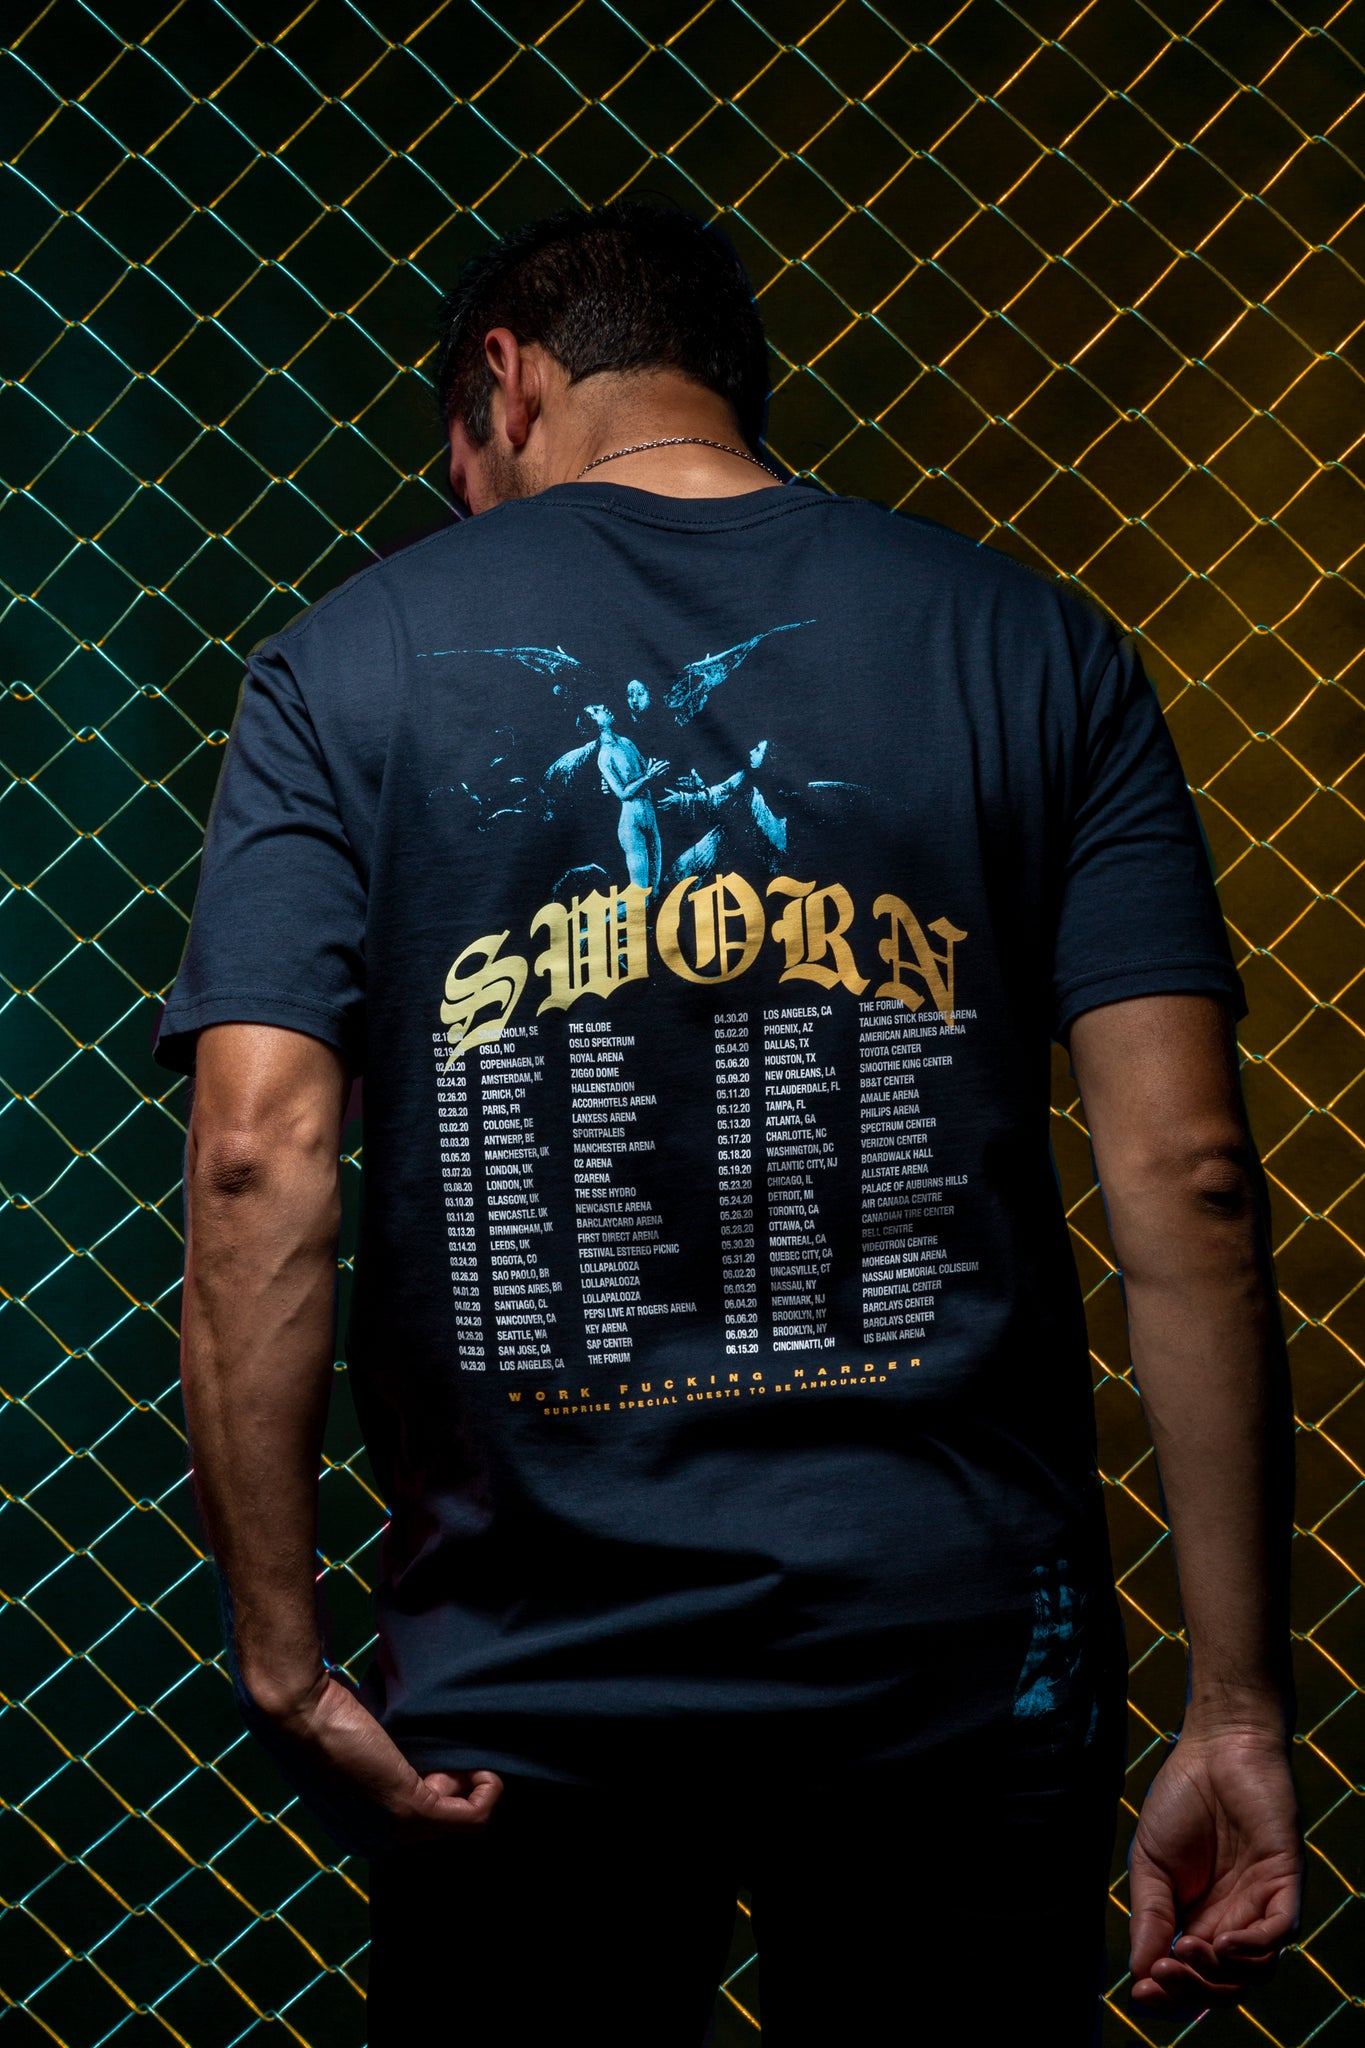 Sworn To Us - Eternally Grateful Tour - TOUR tee // Indigo Blue Back